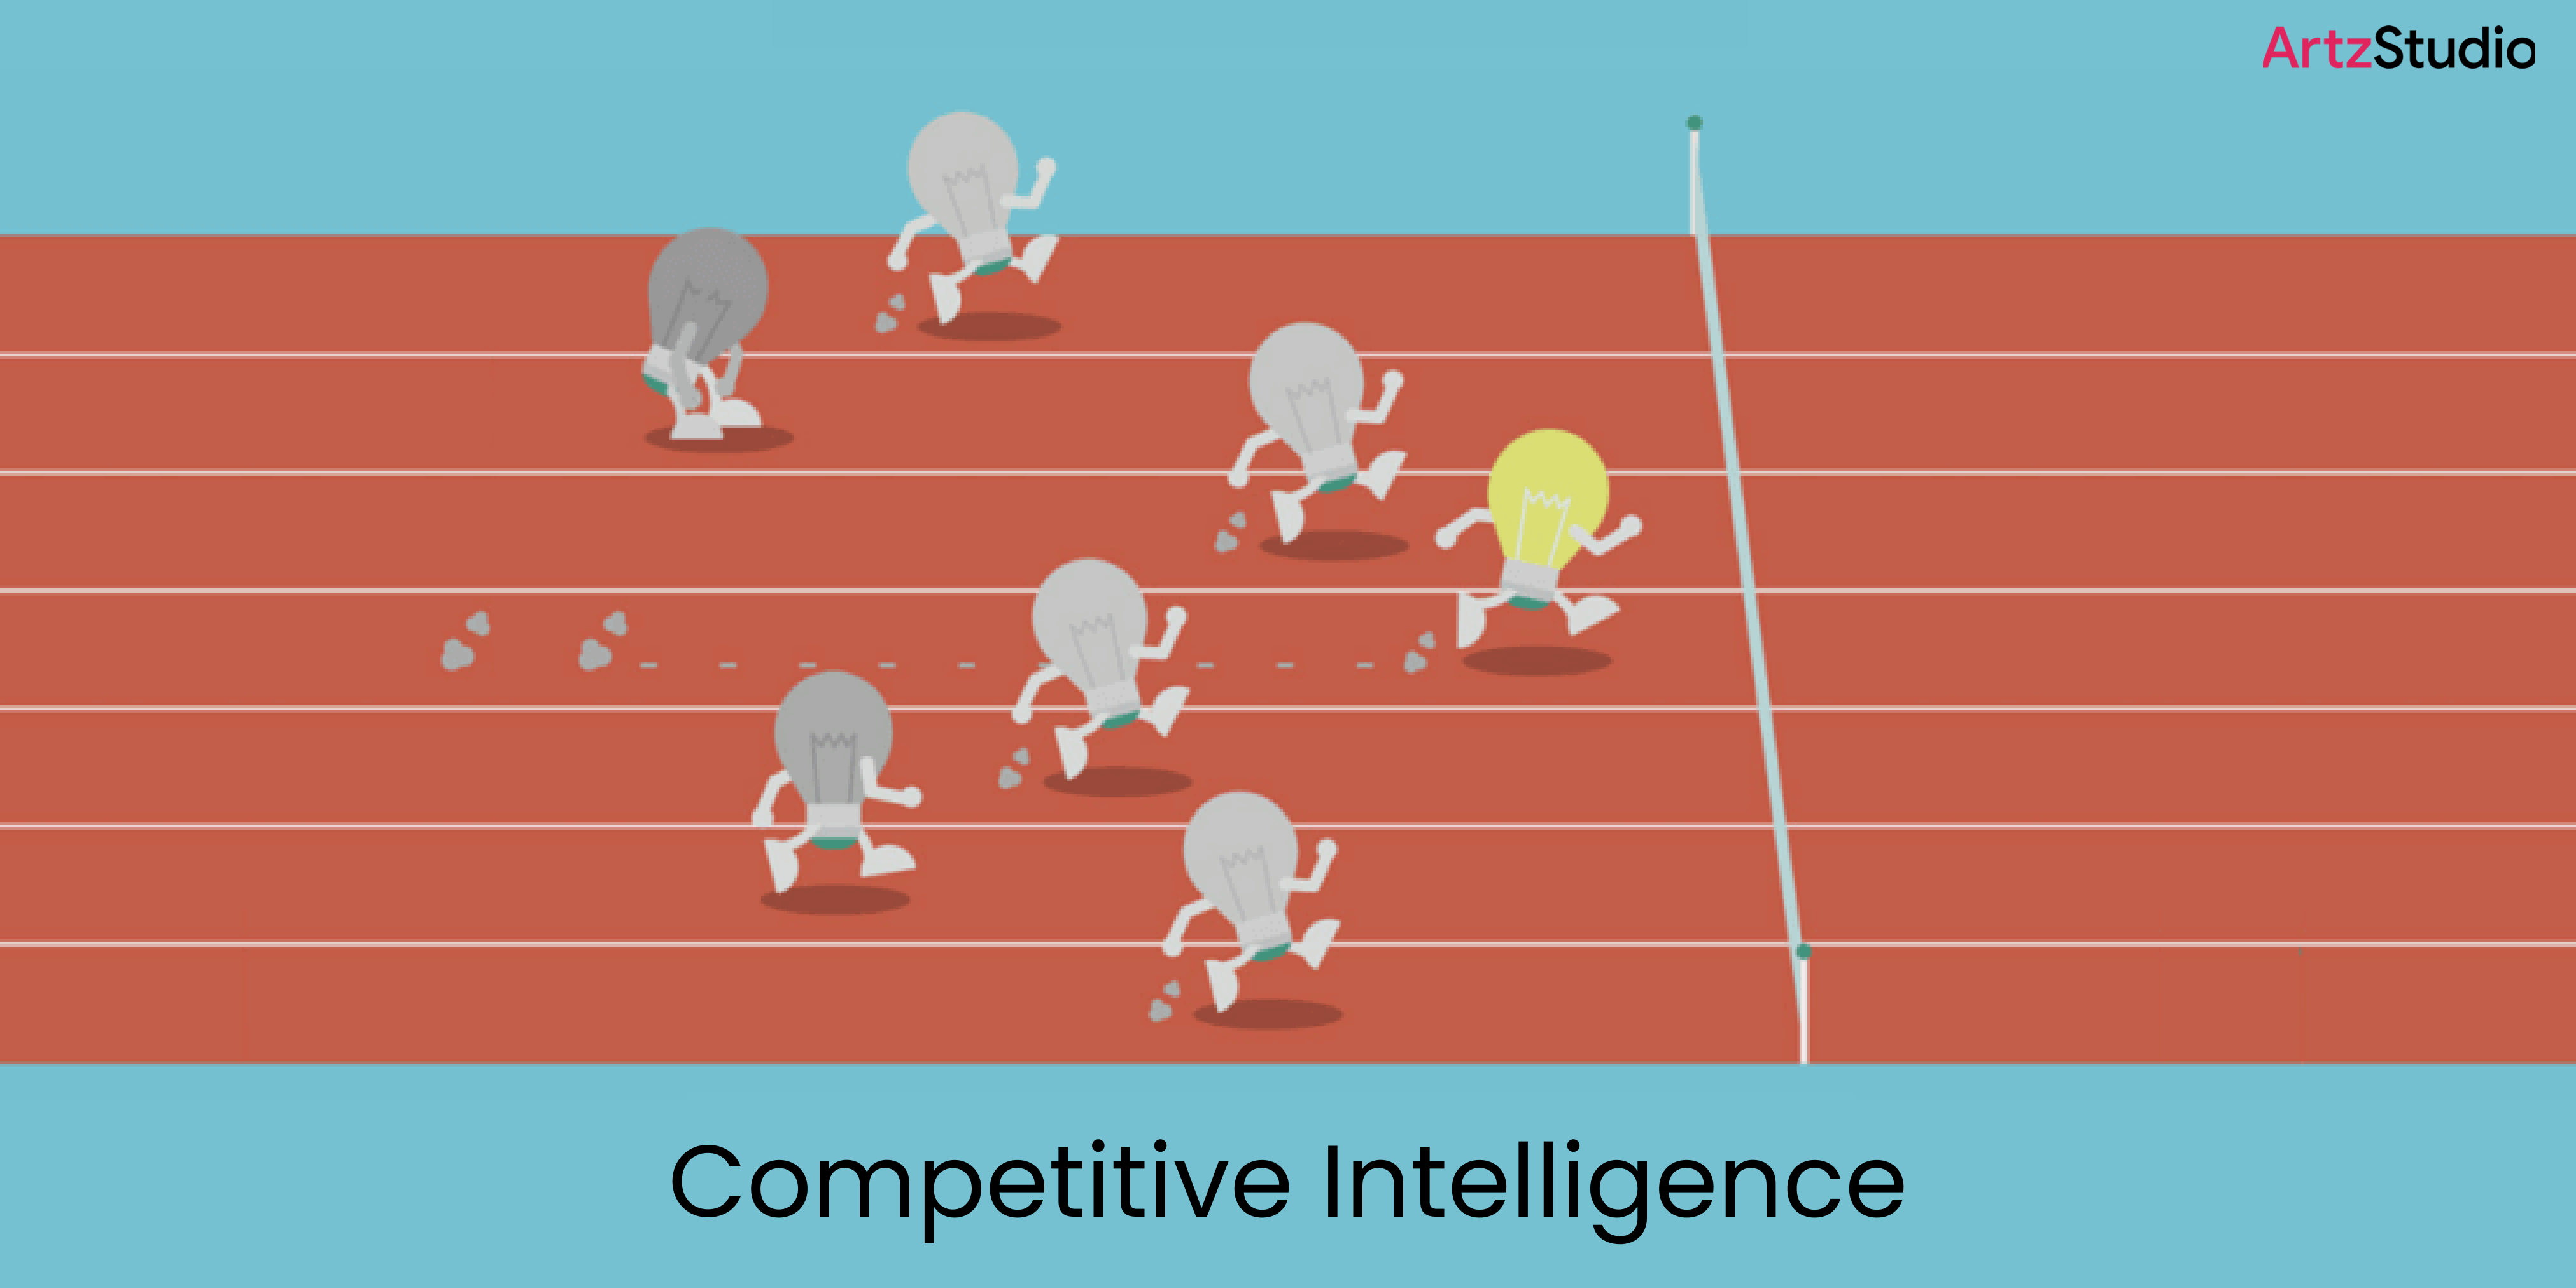 What Is Competitive Intelligence How To Do An Analysis Of The Competition Online?